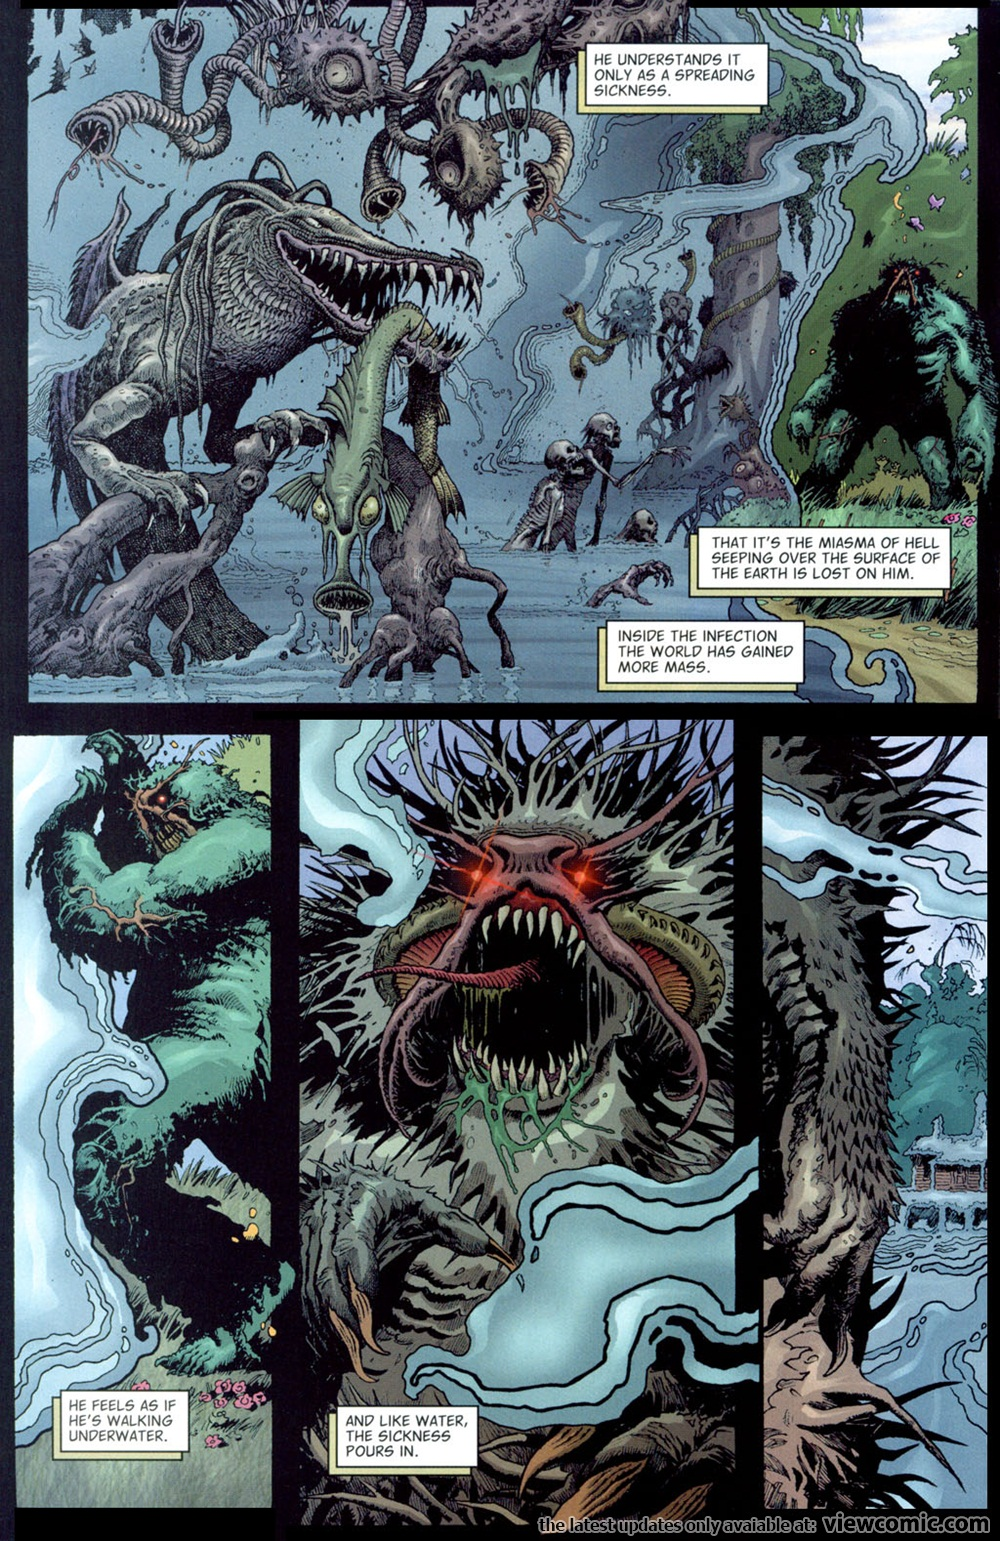 Swamp Thing v4 010 | Vietcomic.net reading comics online for free